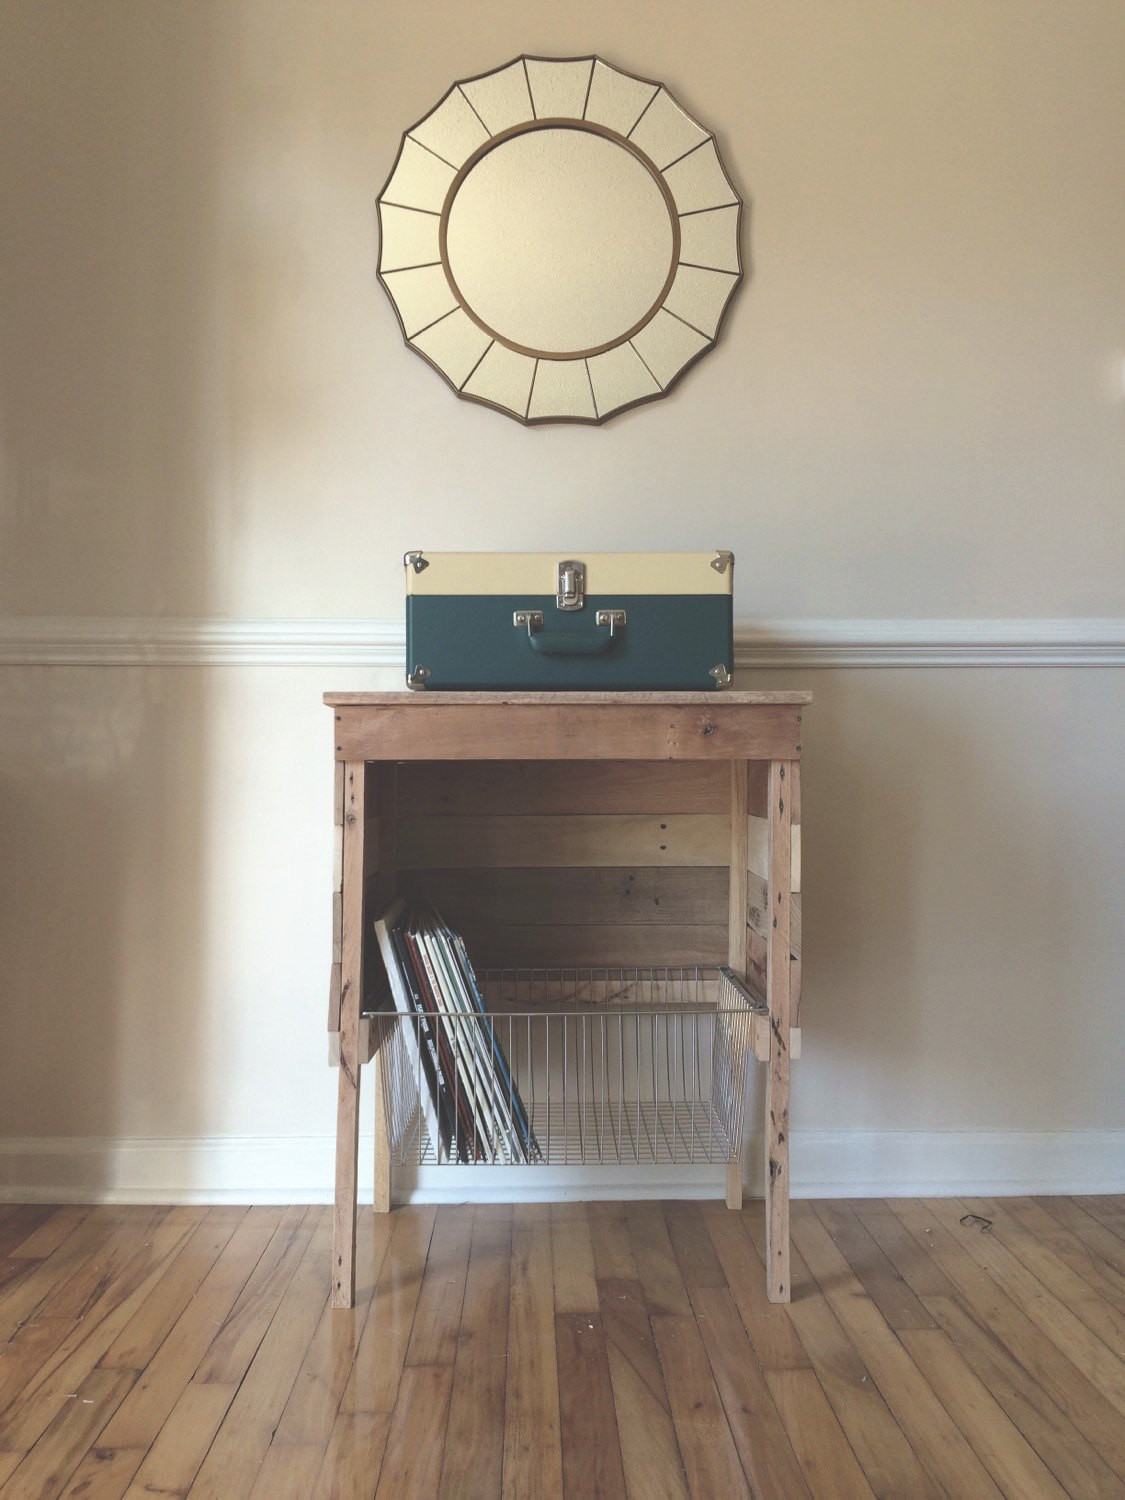 Best ideas about Record Player Stand DIY . Save or Pin Reclaimed Record Player Storage Stand Now.